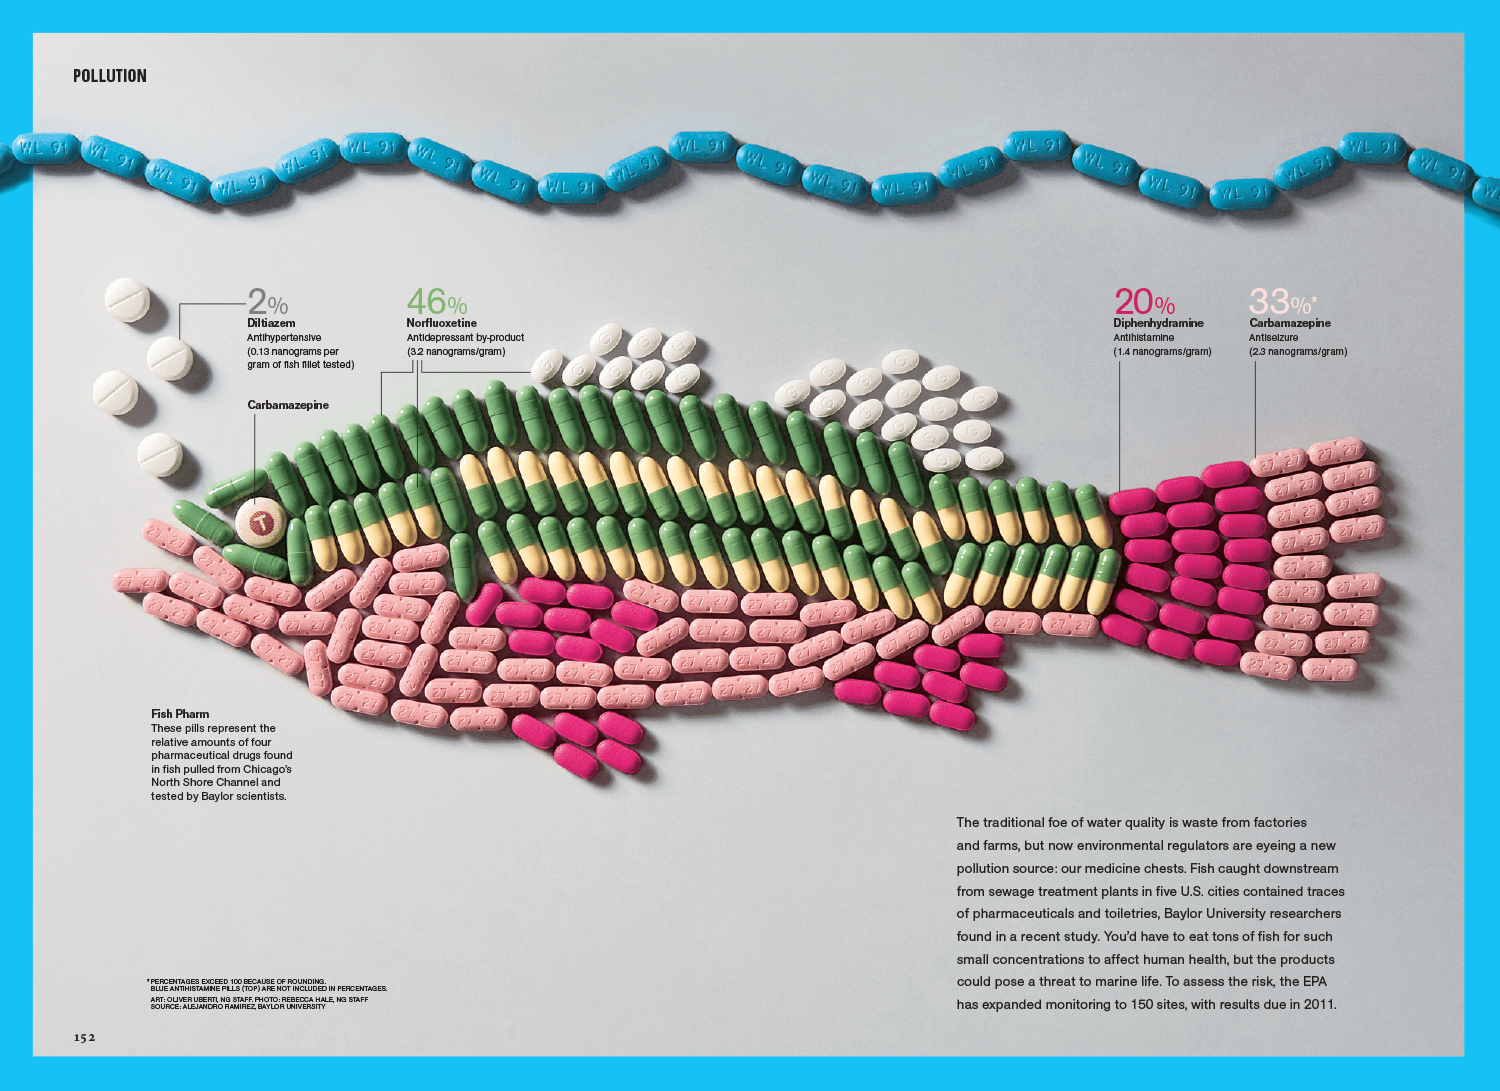 Fish Pharm   National Geographic  April 2010  To license, email:  NatGeoCreative@natgeo.com